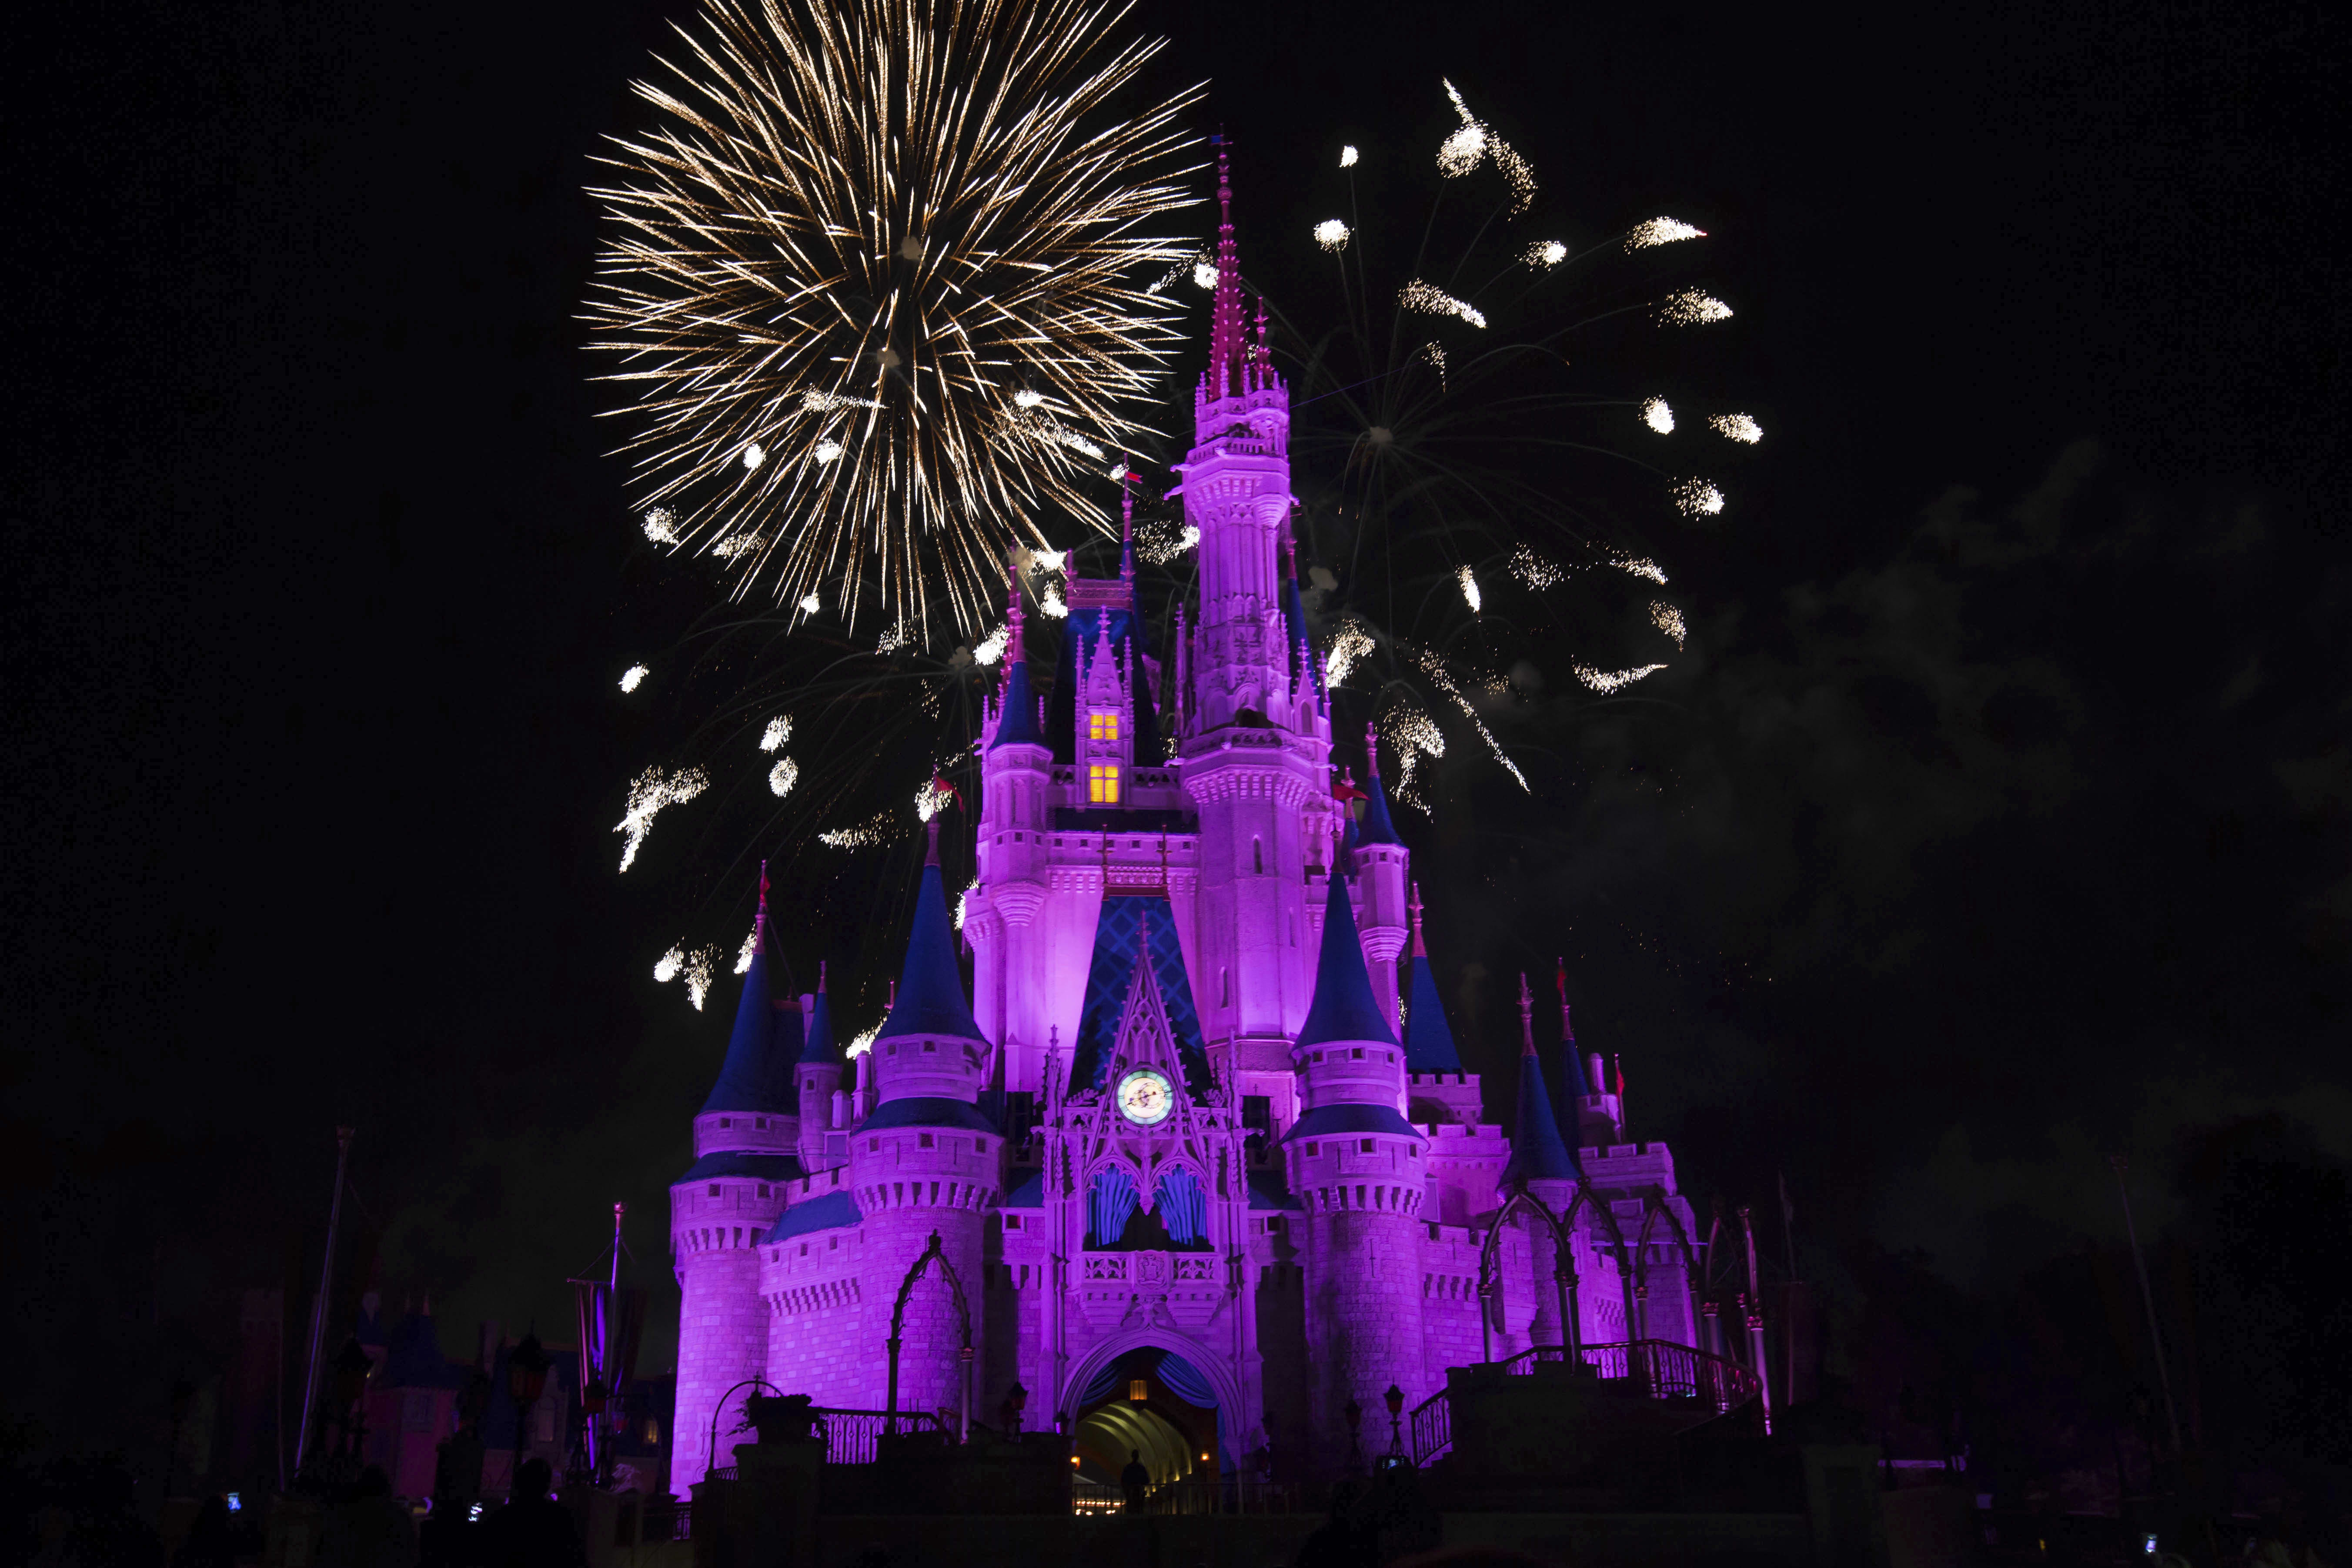 Disney to furlough non-union park employees in the U.S.